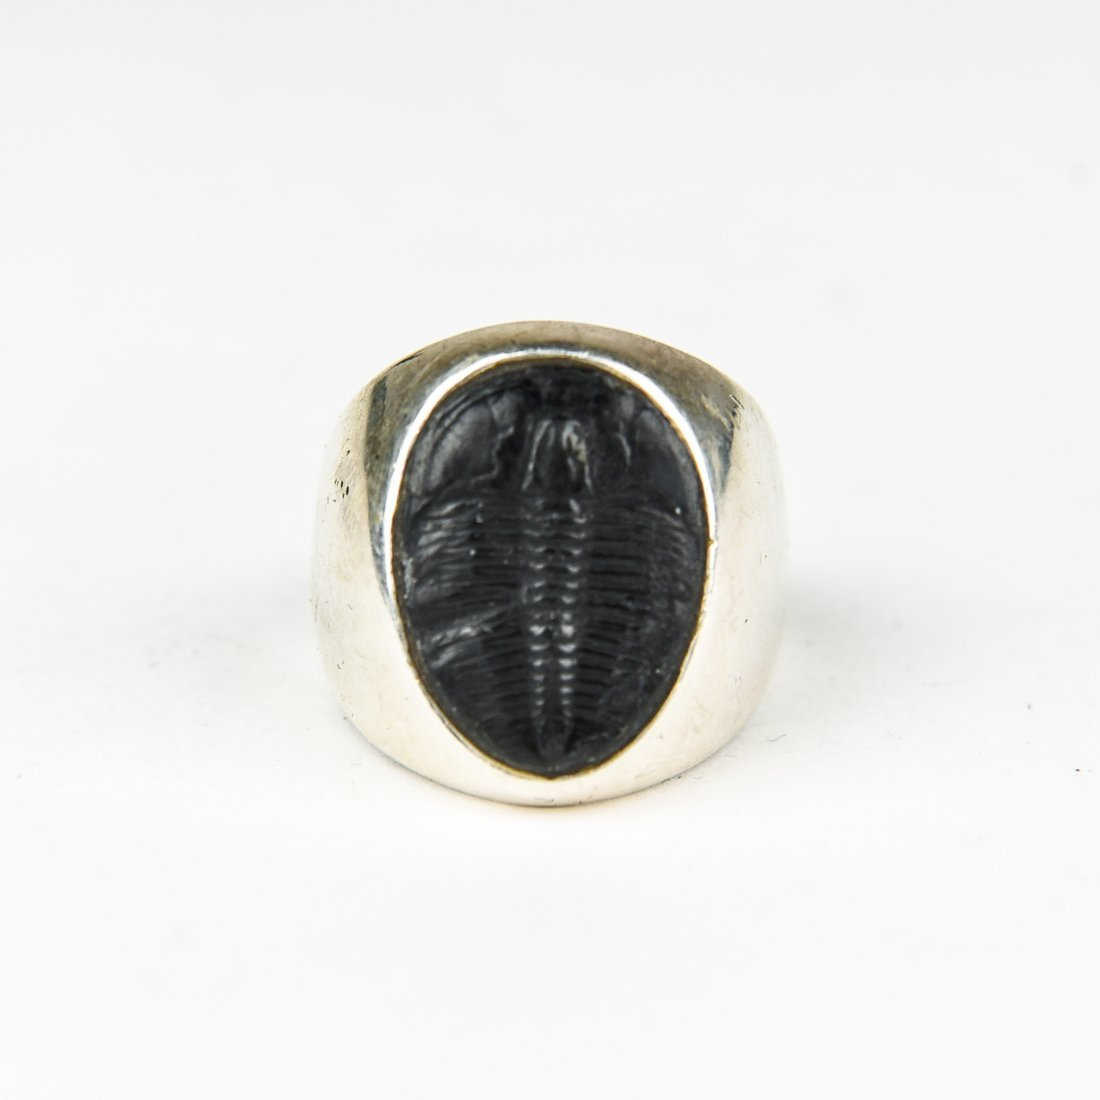 SILVER TRILOBITE FOSSIL RING